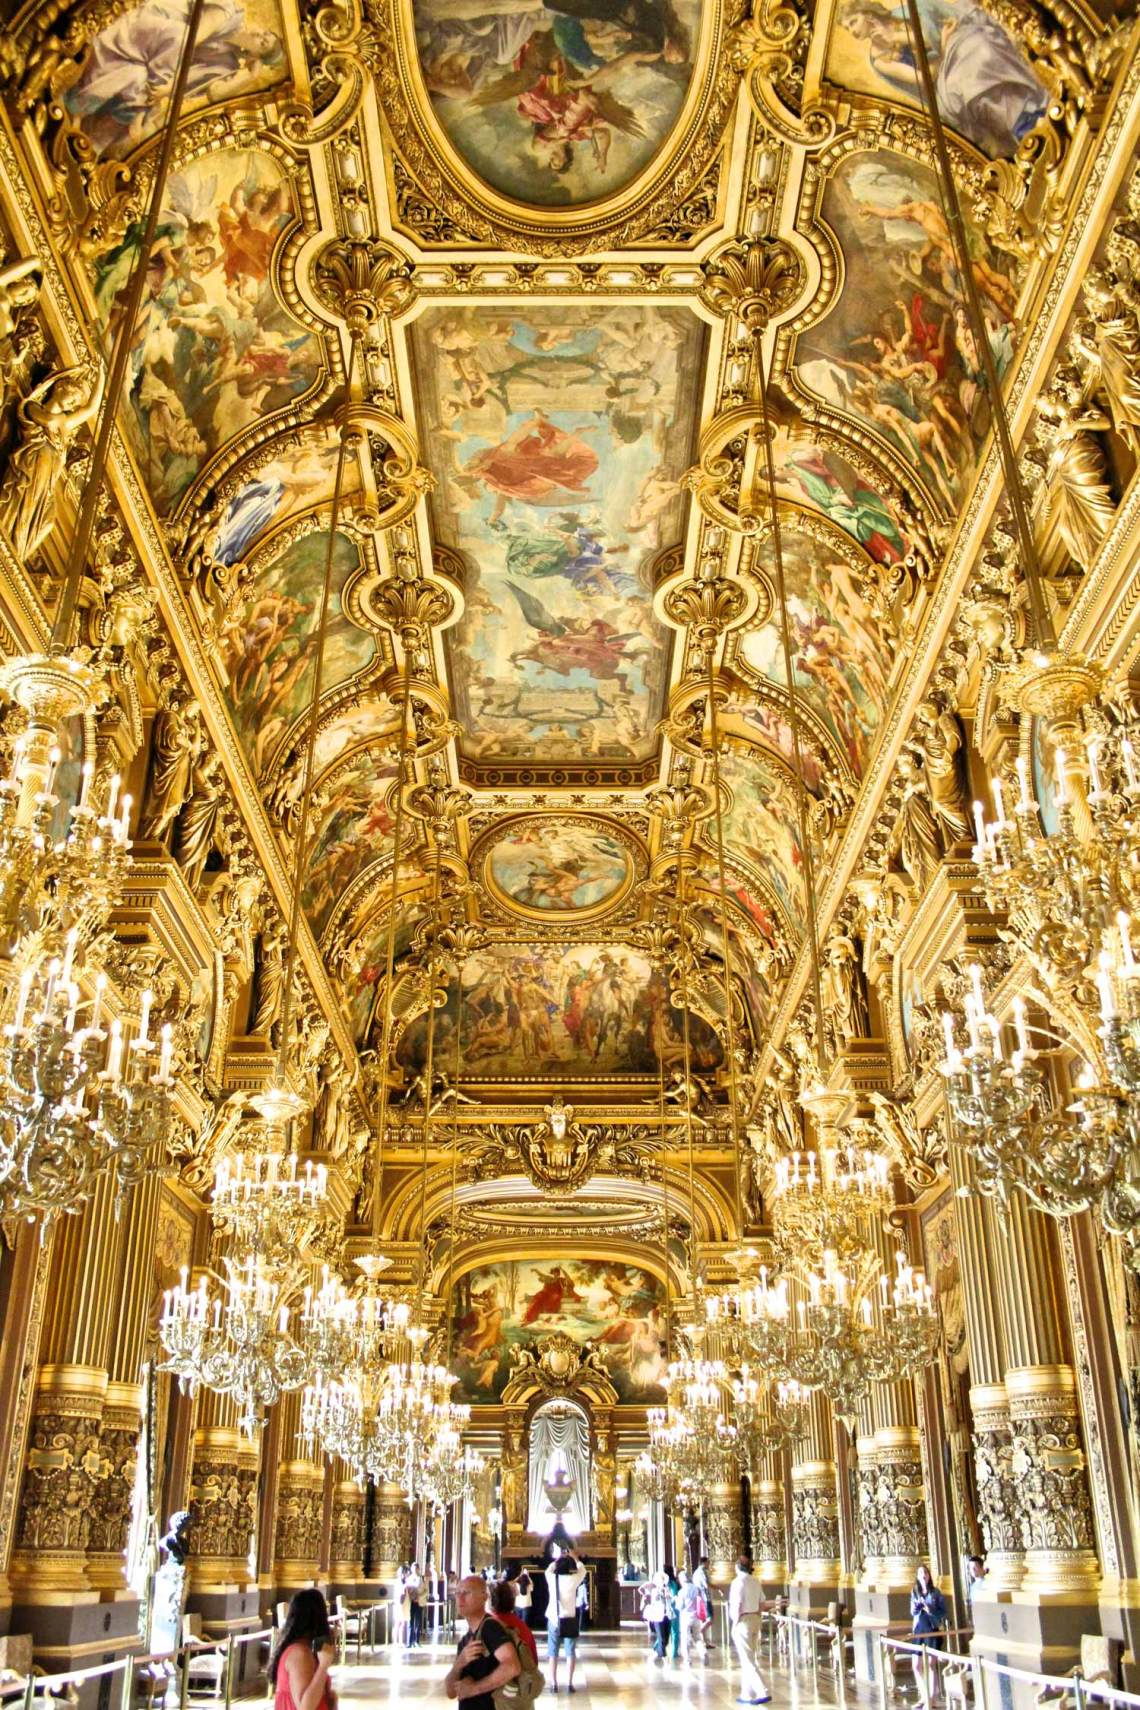 Palais Garnier, Great Hall, Gold Room, Paris, France, Tourism